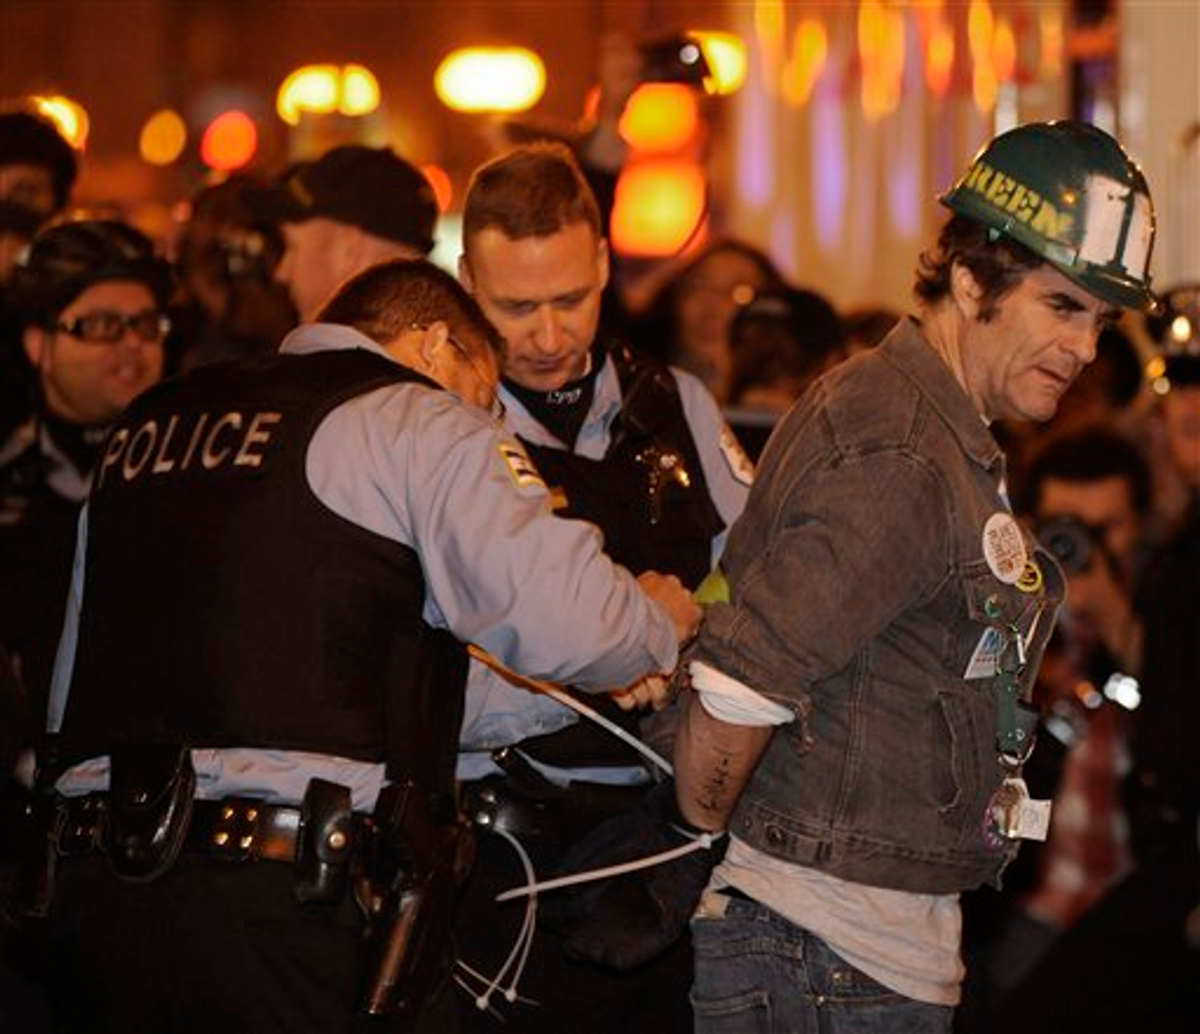 A protester gets arrested during an Occupy Chicago march and protest in Grant Park in Chicago, Sunday, Oct. 23, 2011    (AP Photo/Paul Beaty)